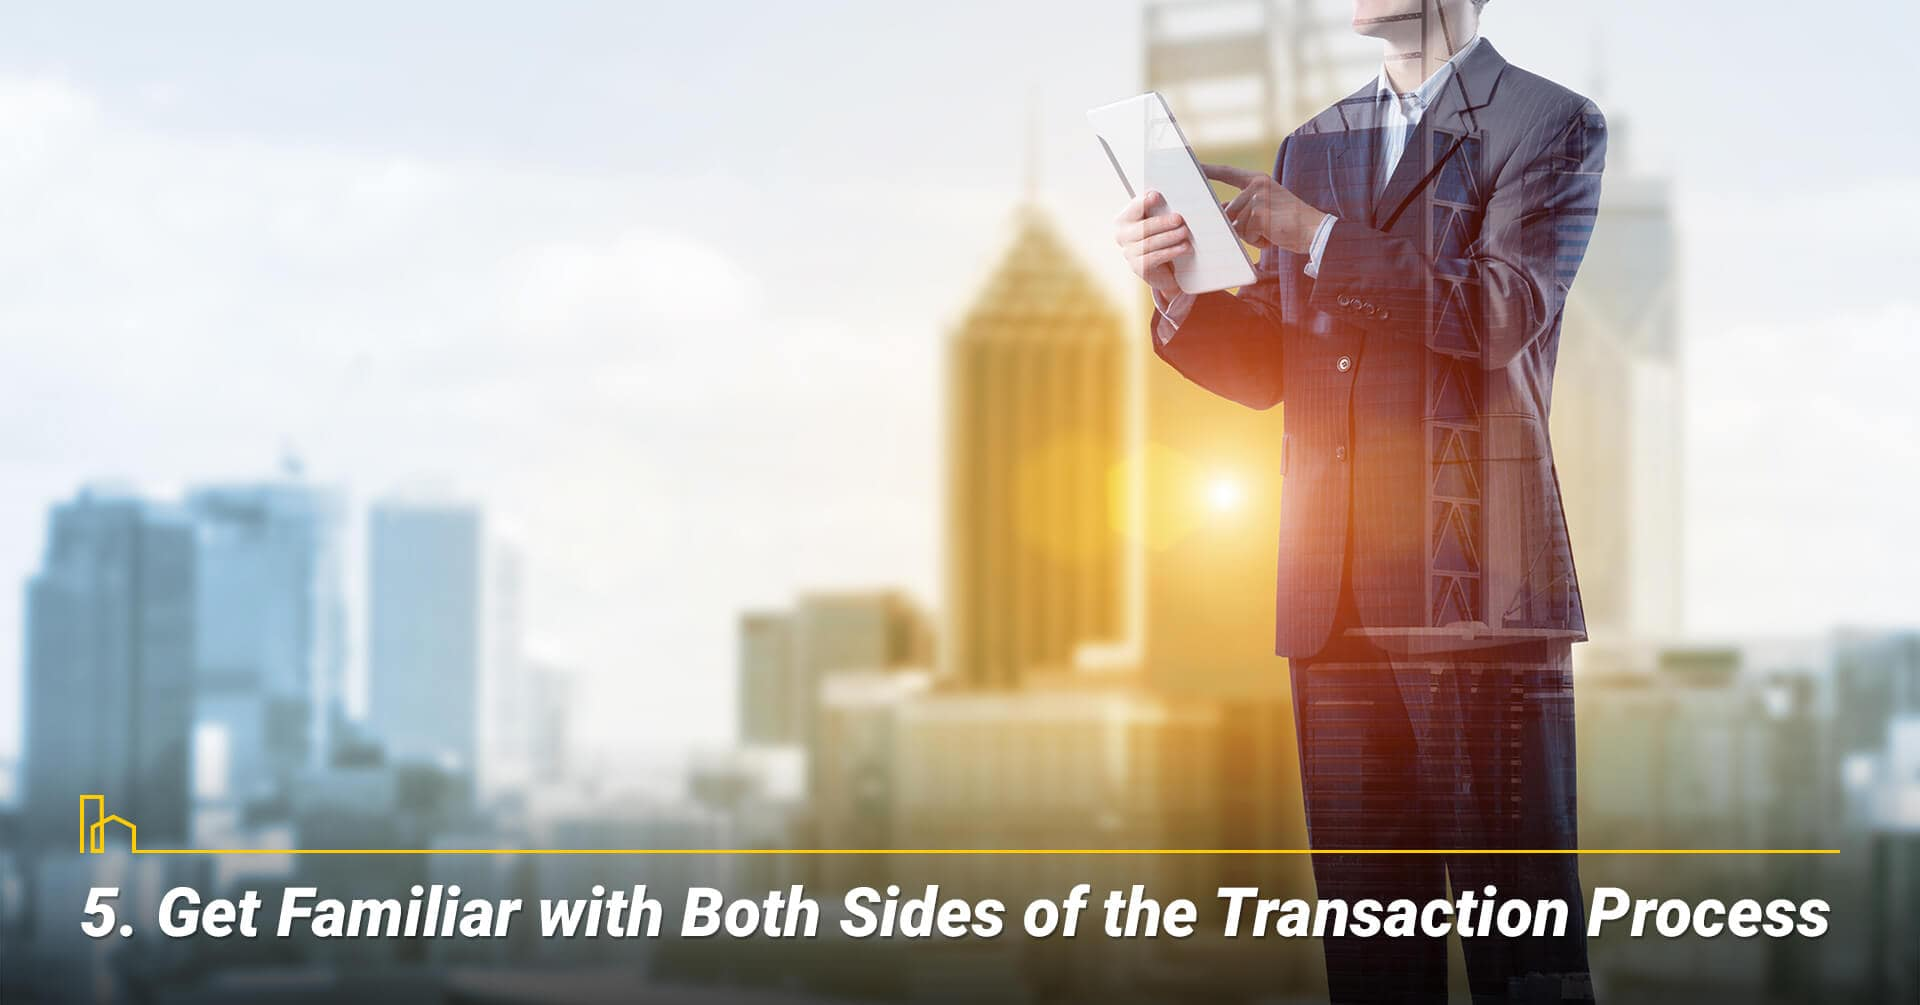 Get Familiar with Both Sides of the Transaction Process, be familiar with the process